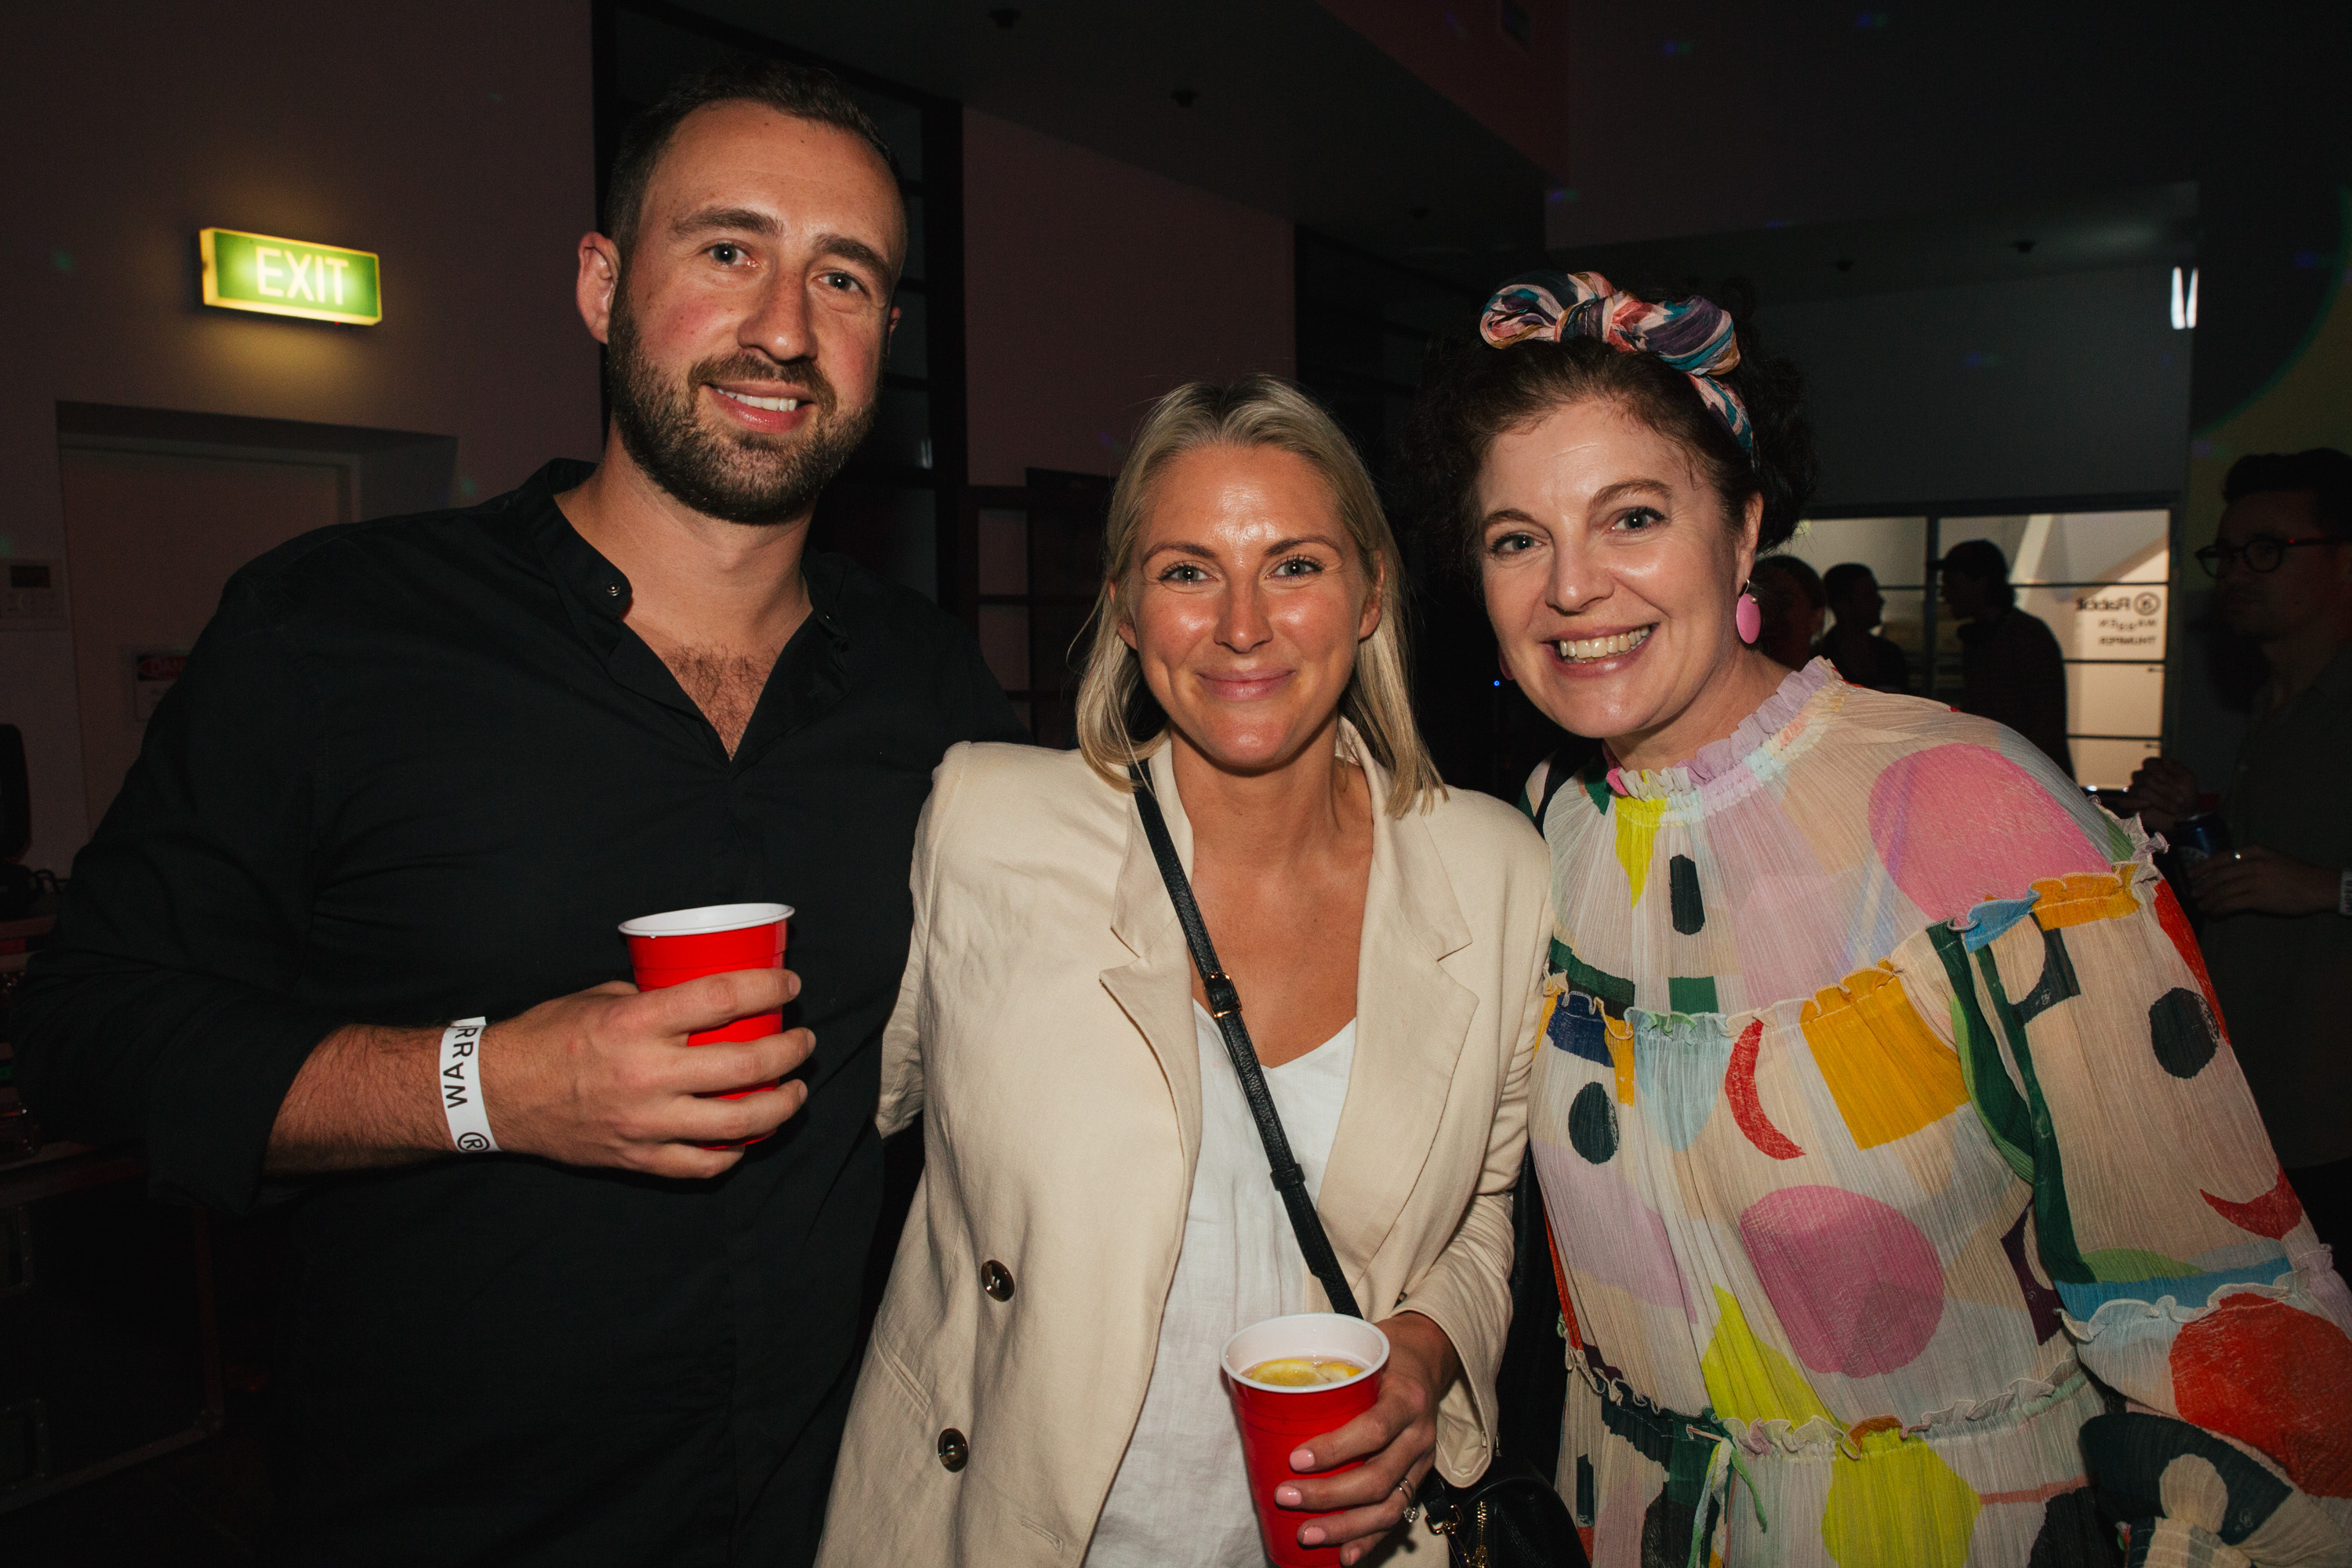 Over 400 of the industry's finest faces attend Rabbit, Warren and Thumper's annual party